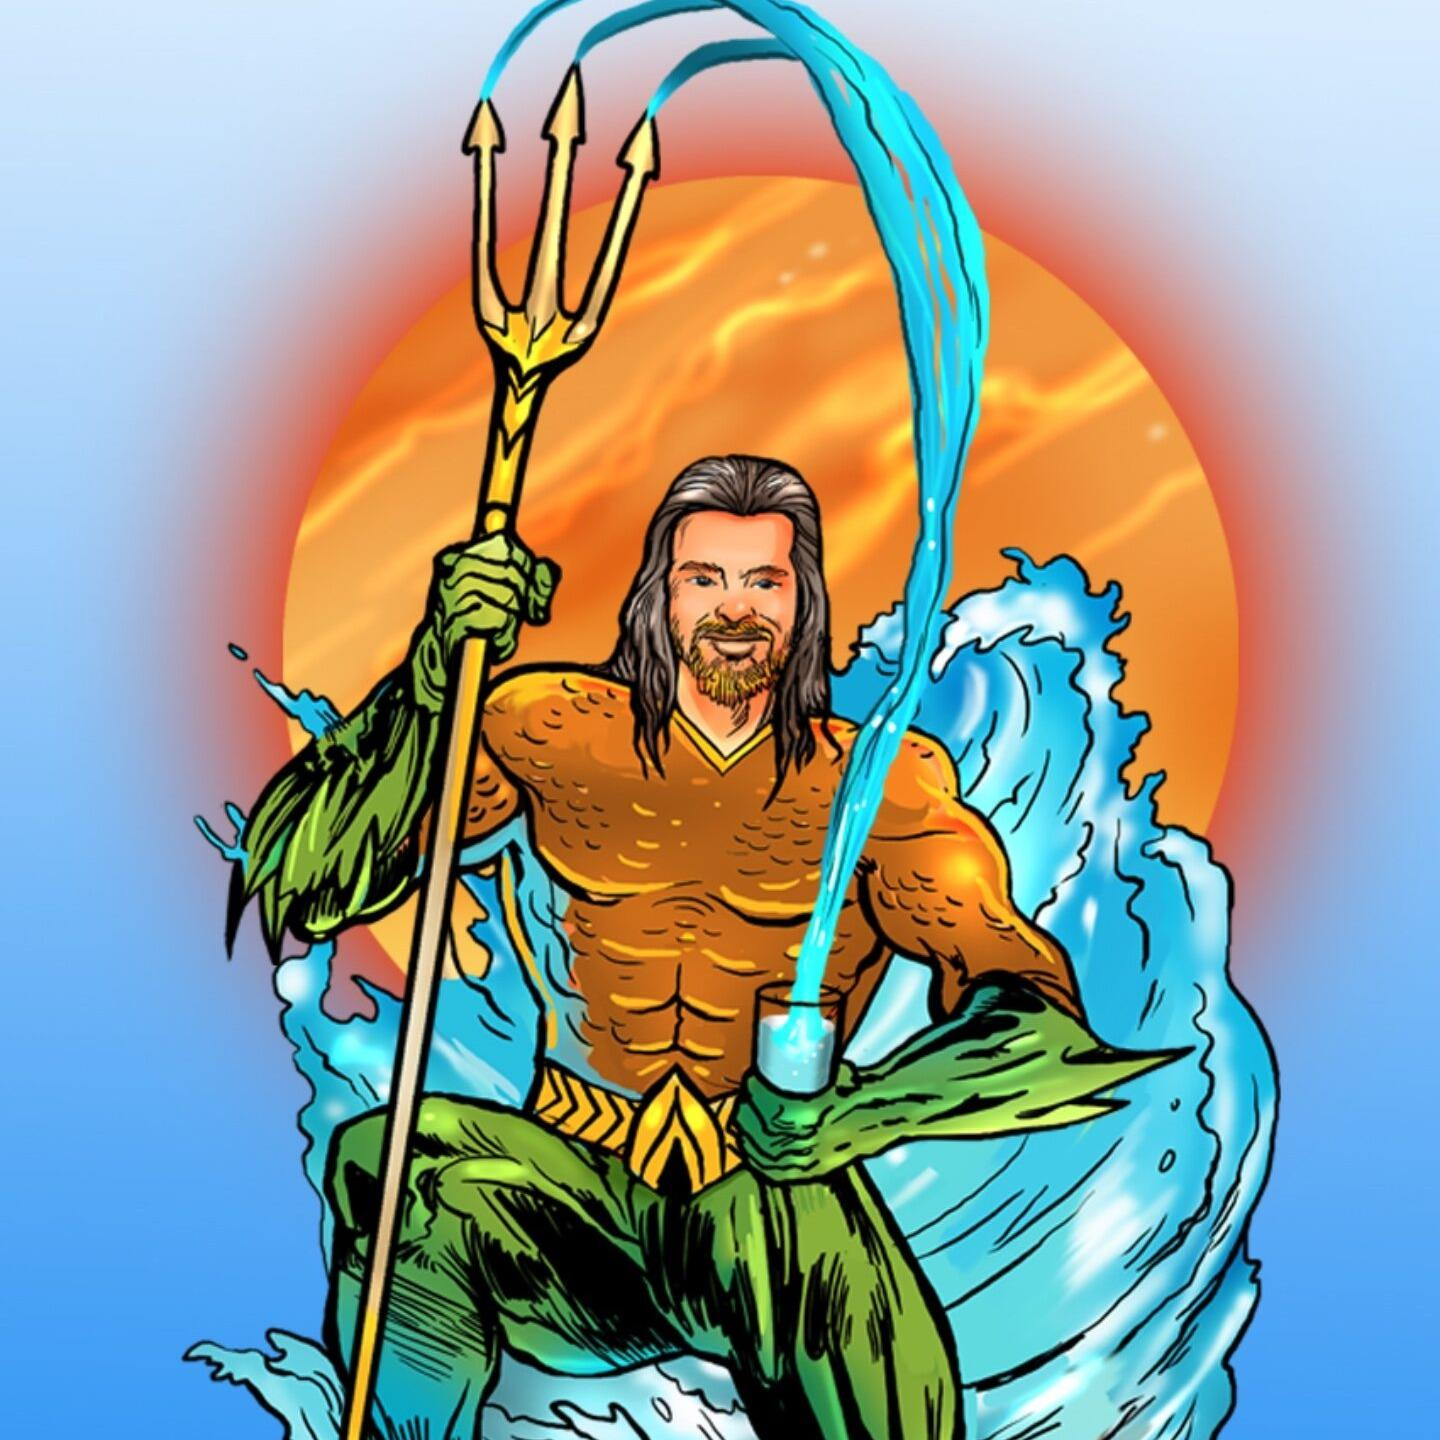 Aquaman Water Treatment Systems Aquaman Water Treatment Systems Palm City (561)248-0171